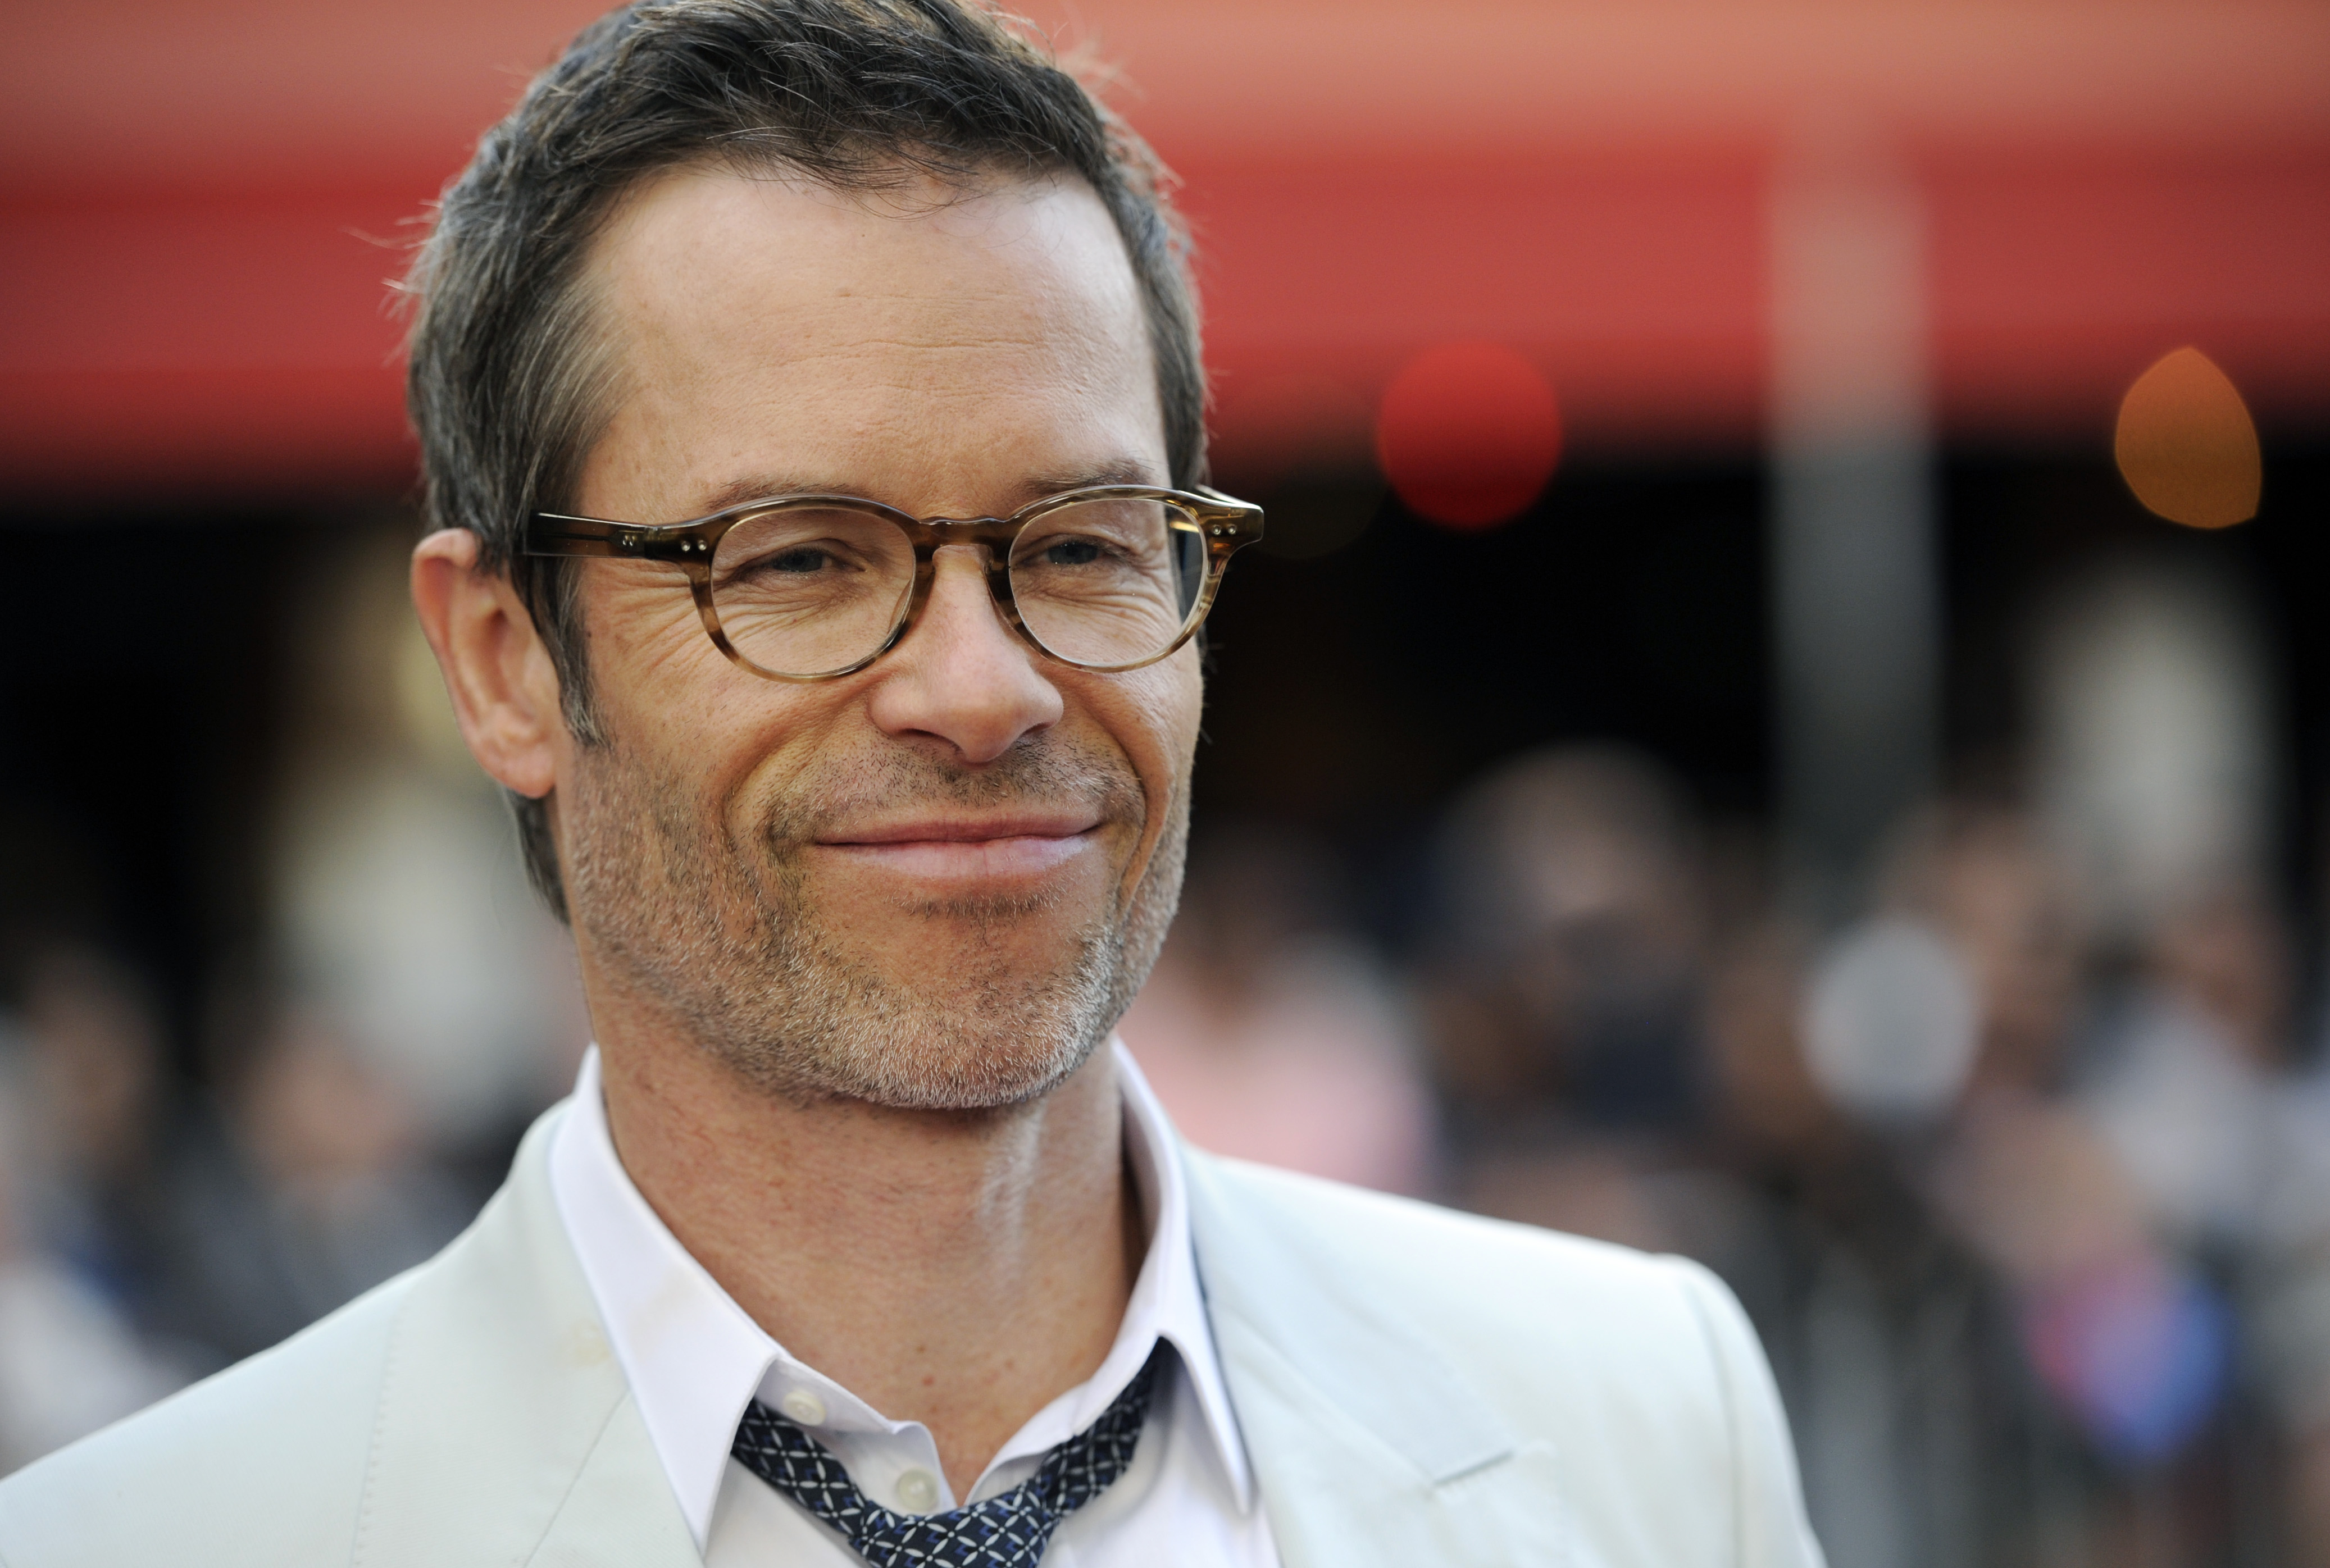 Guy Pearce on Kevin Spacey: 'He's a handsy guy'